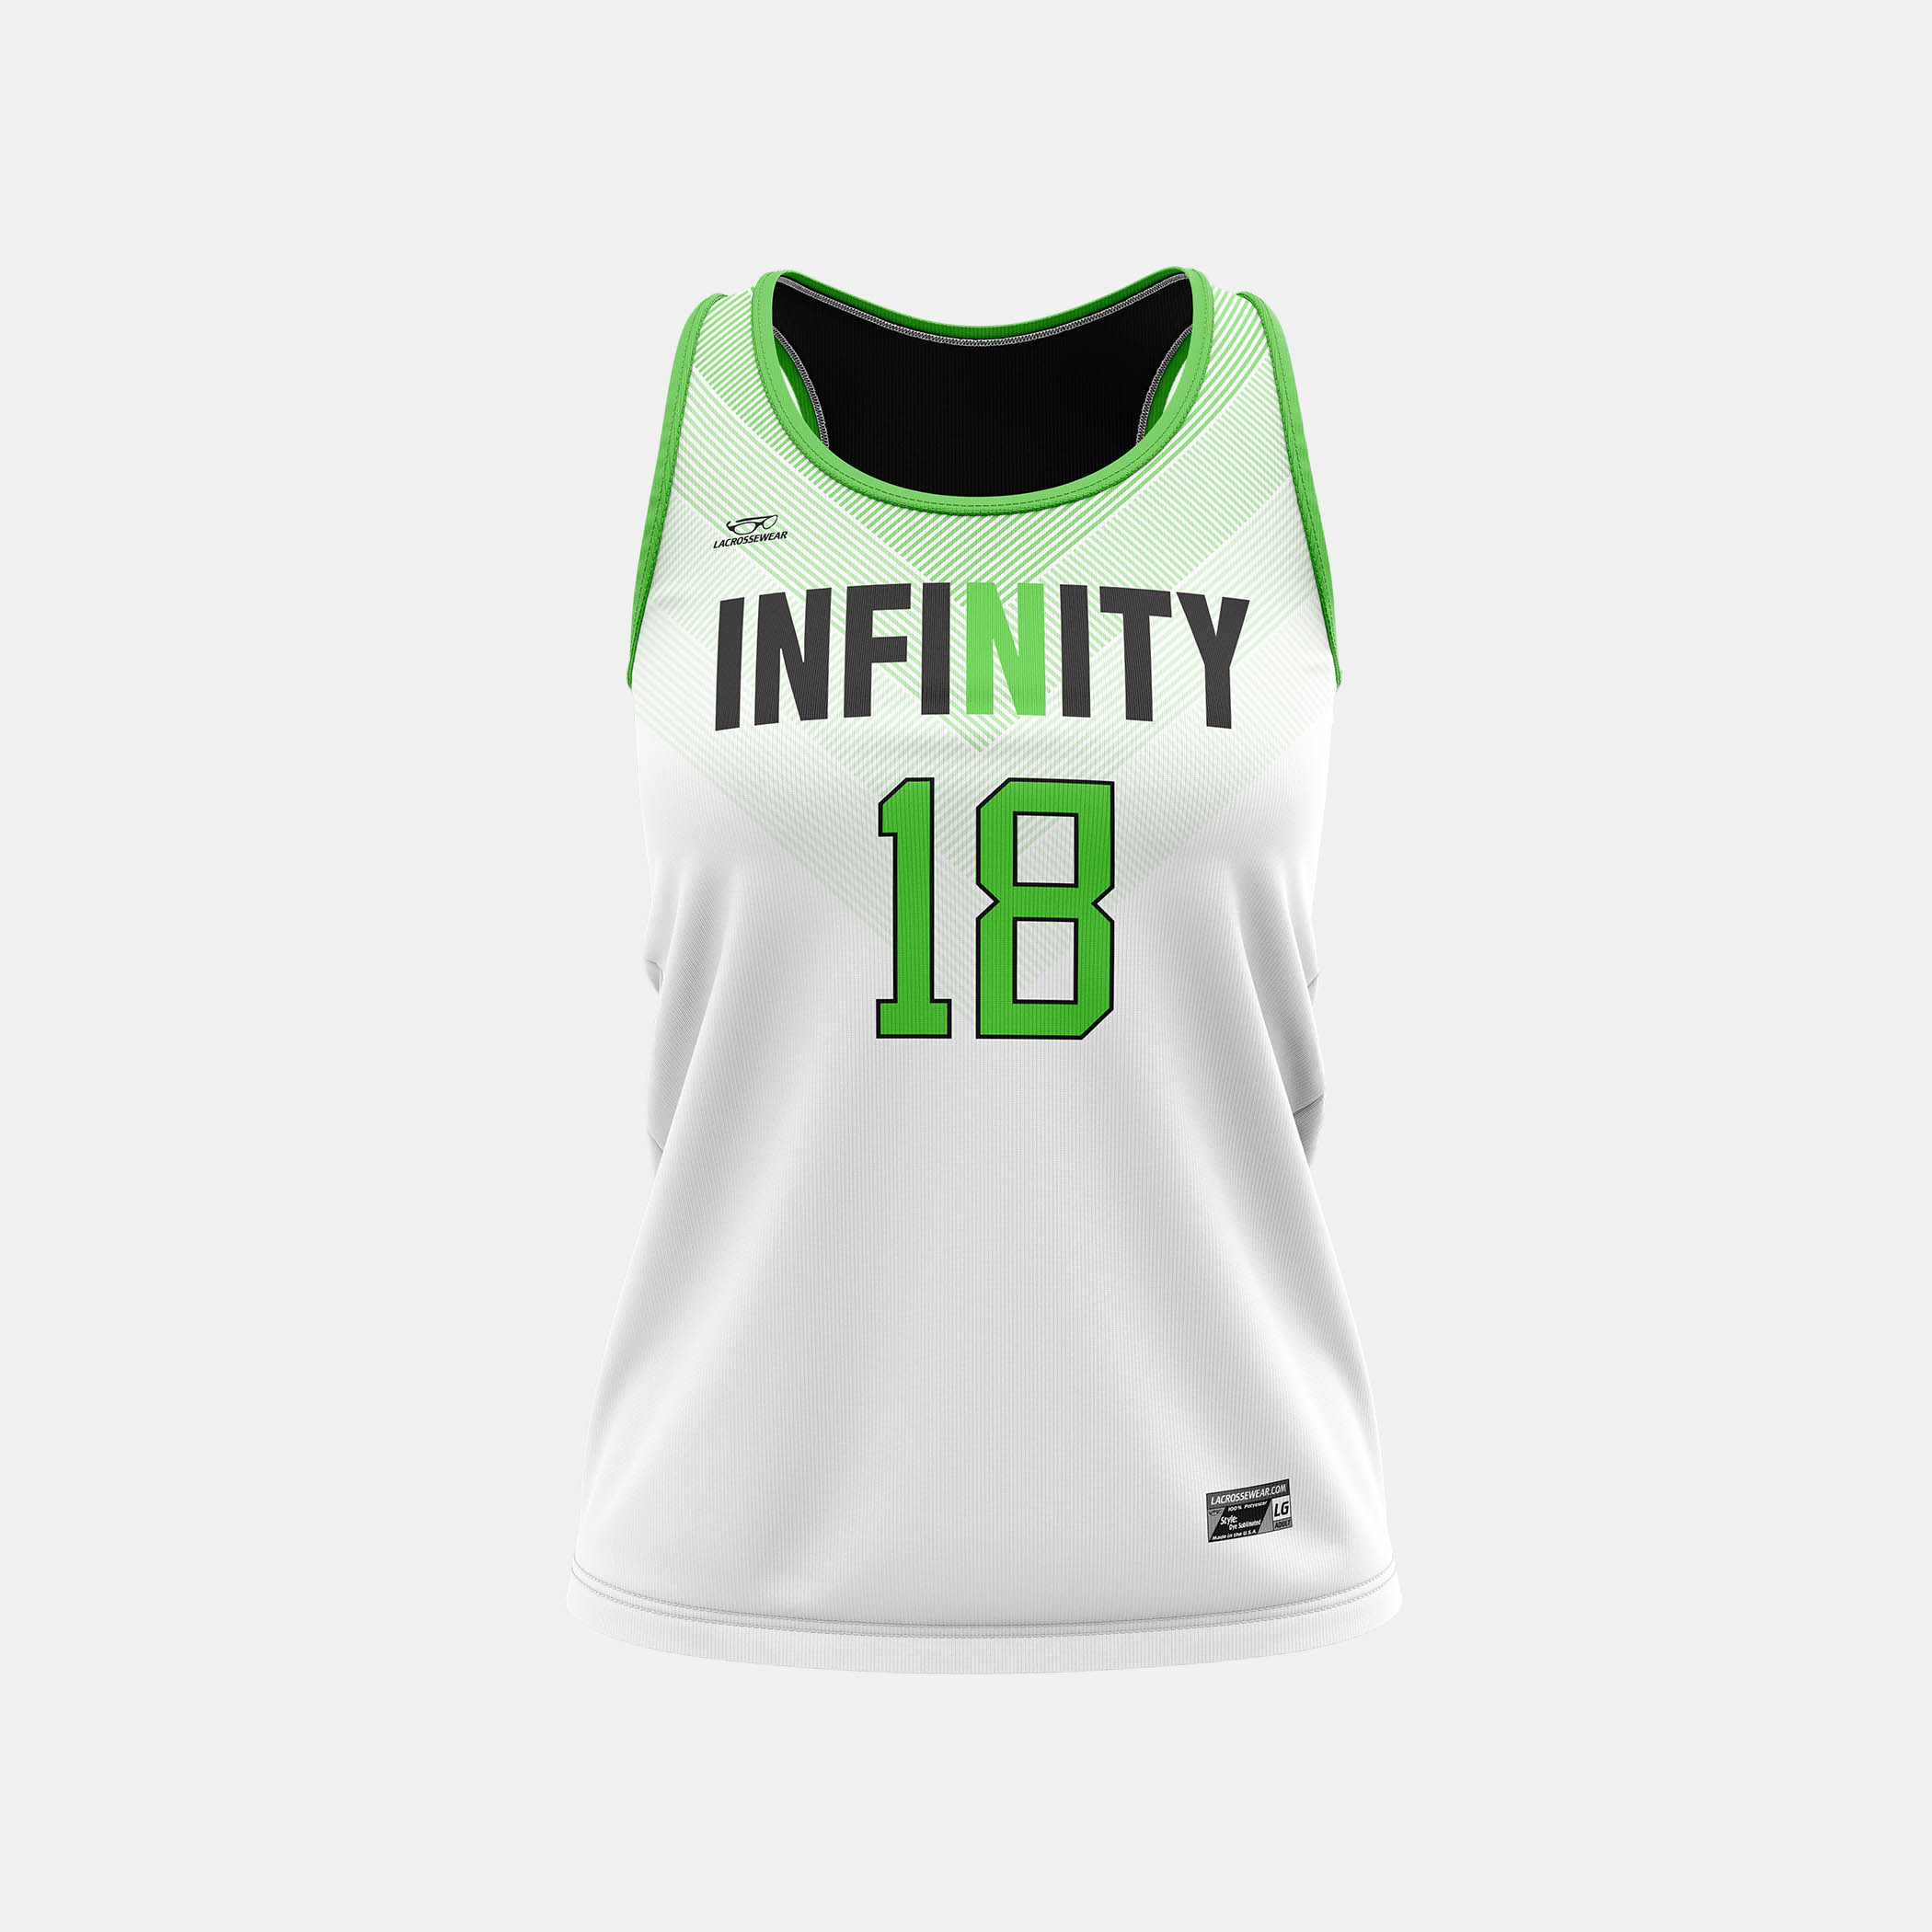 Infinity Racerback Jersey White Front